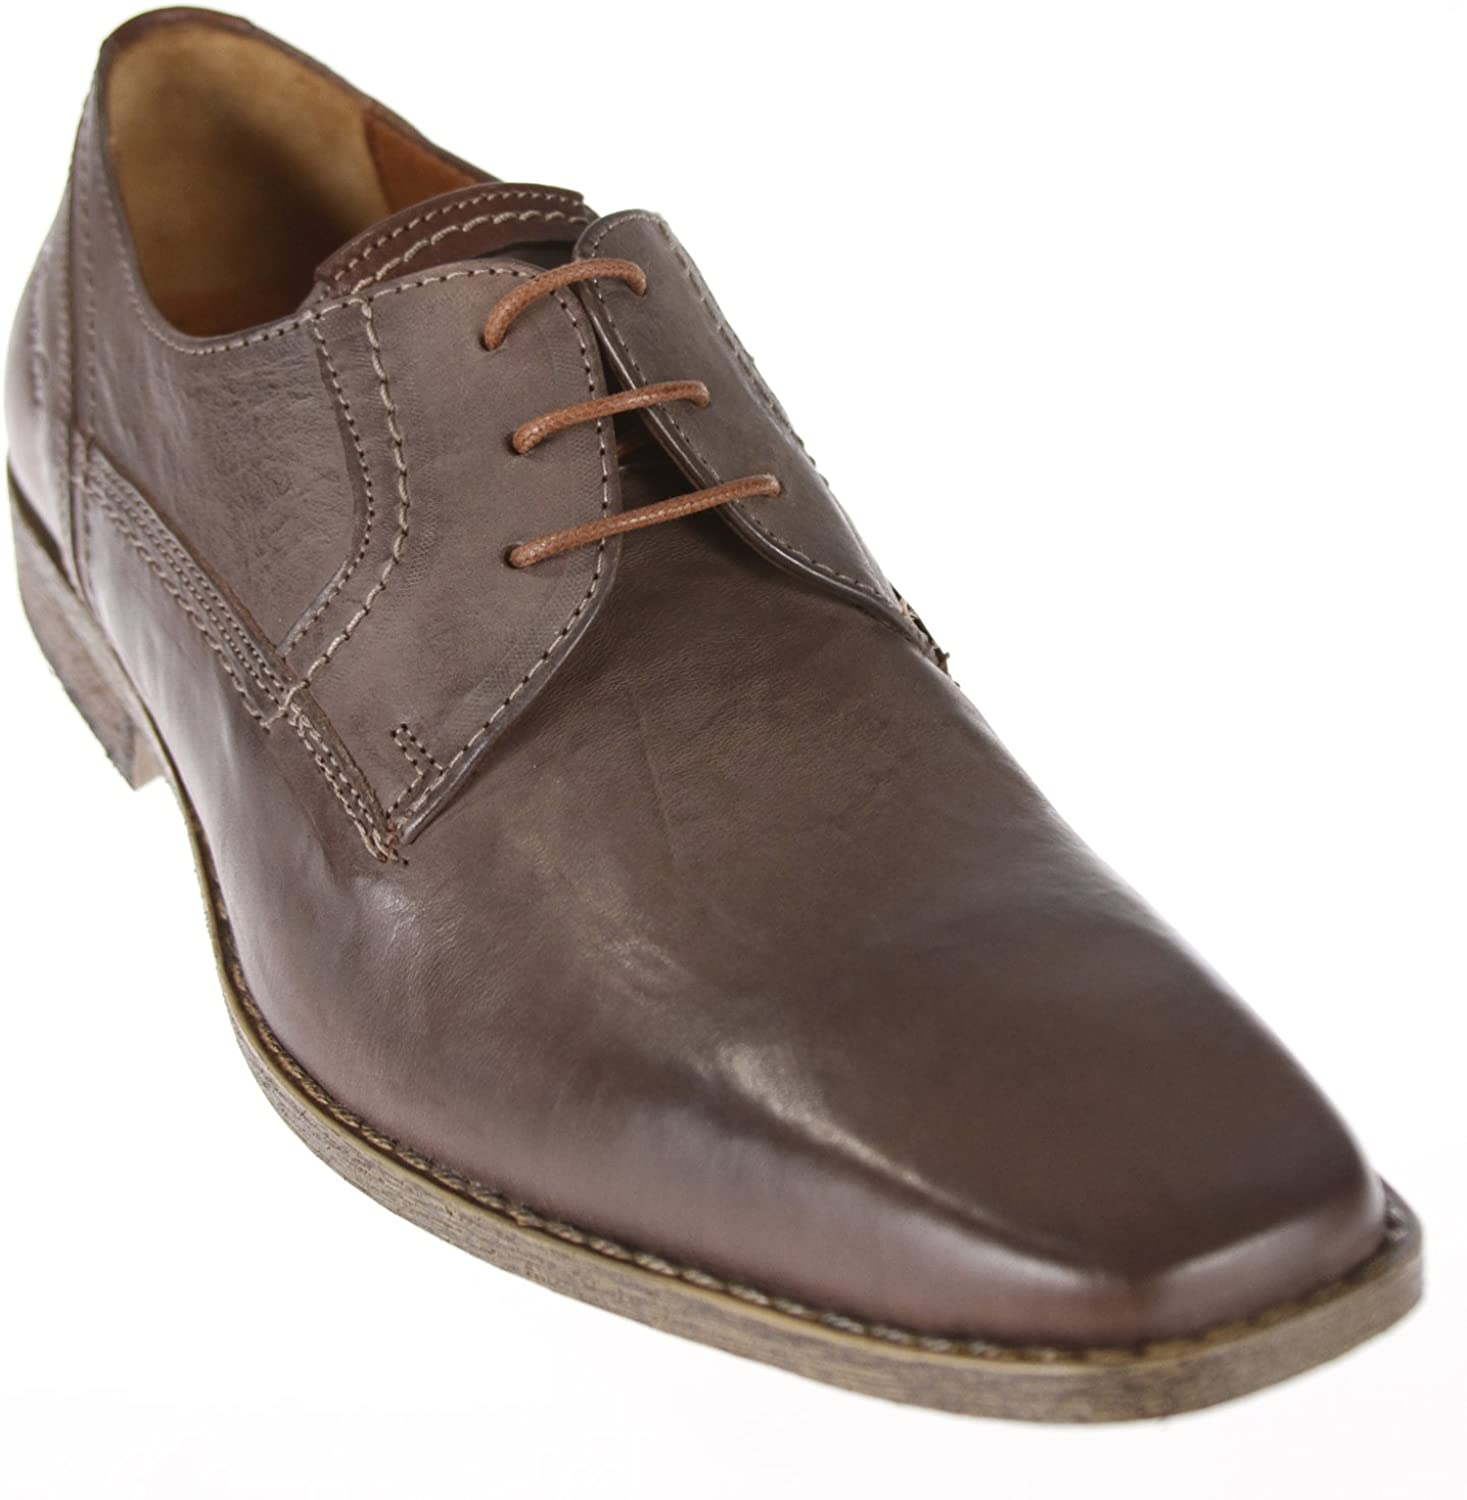 Kenneth Cole REACTION Tell Me More Oxfords Shoes Mens